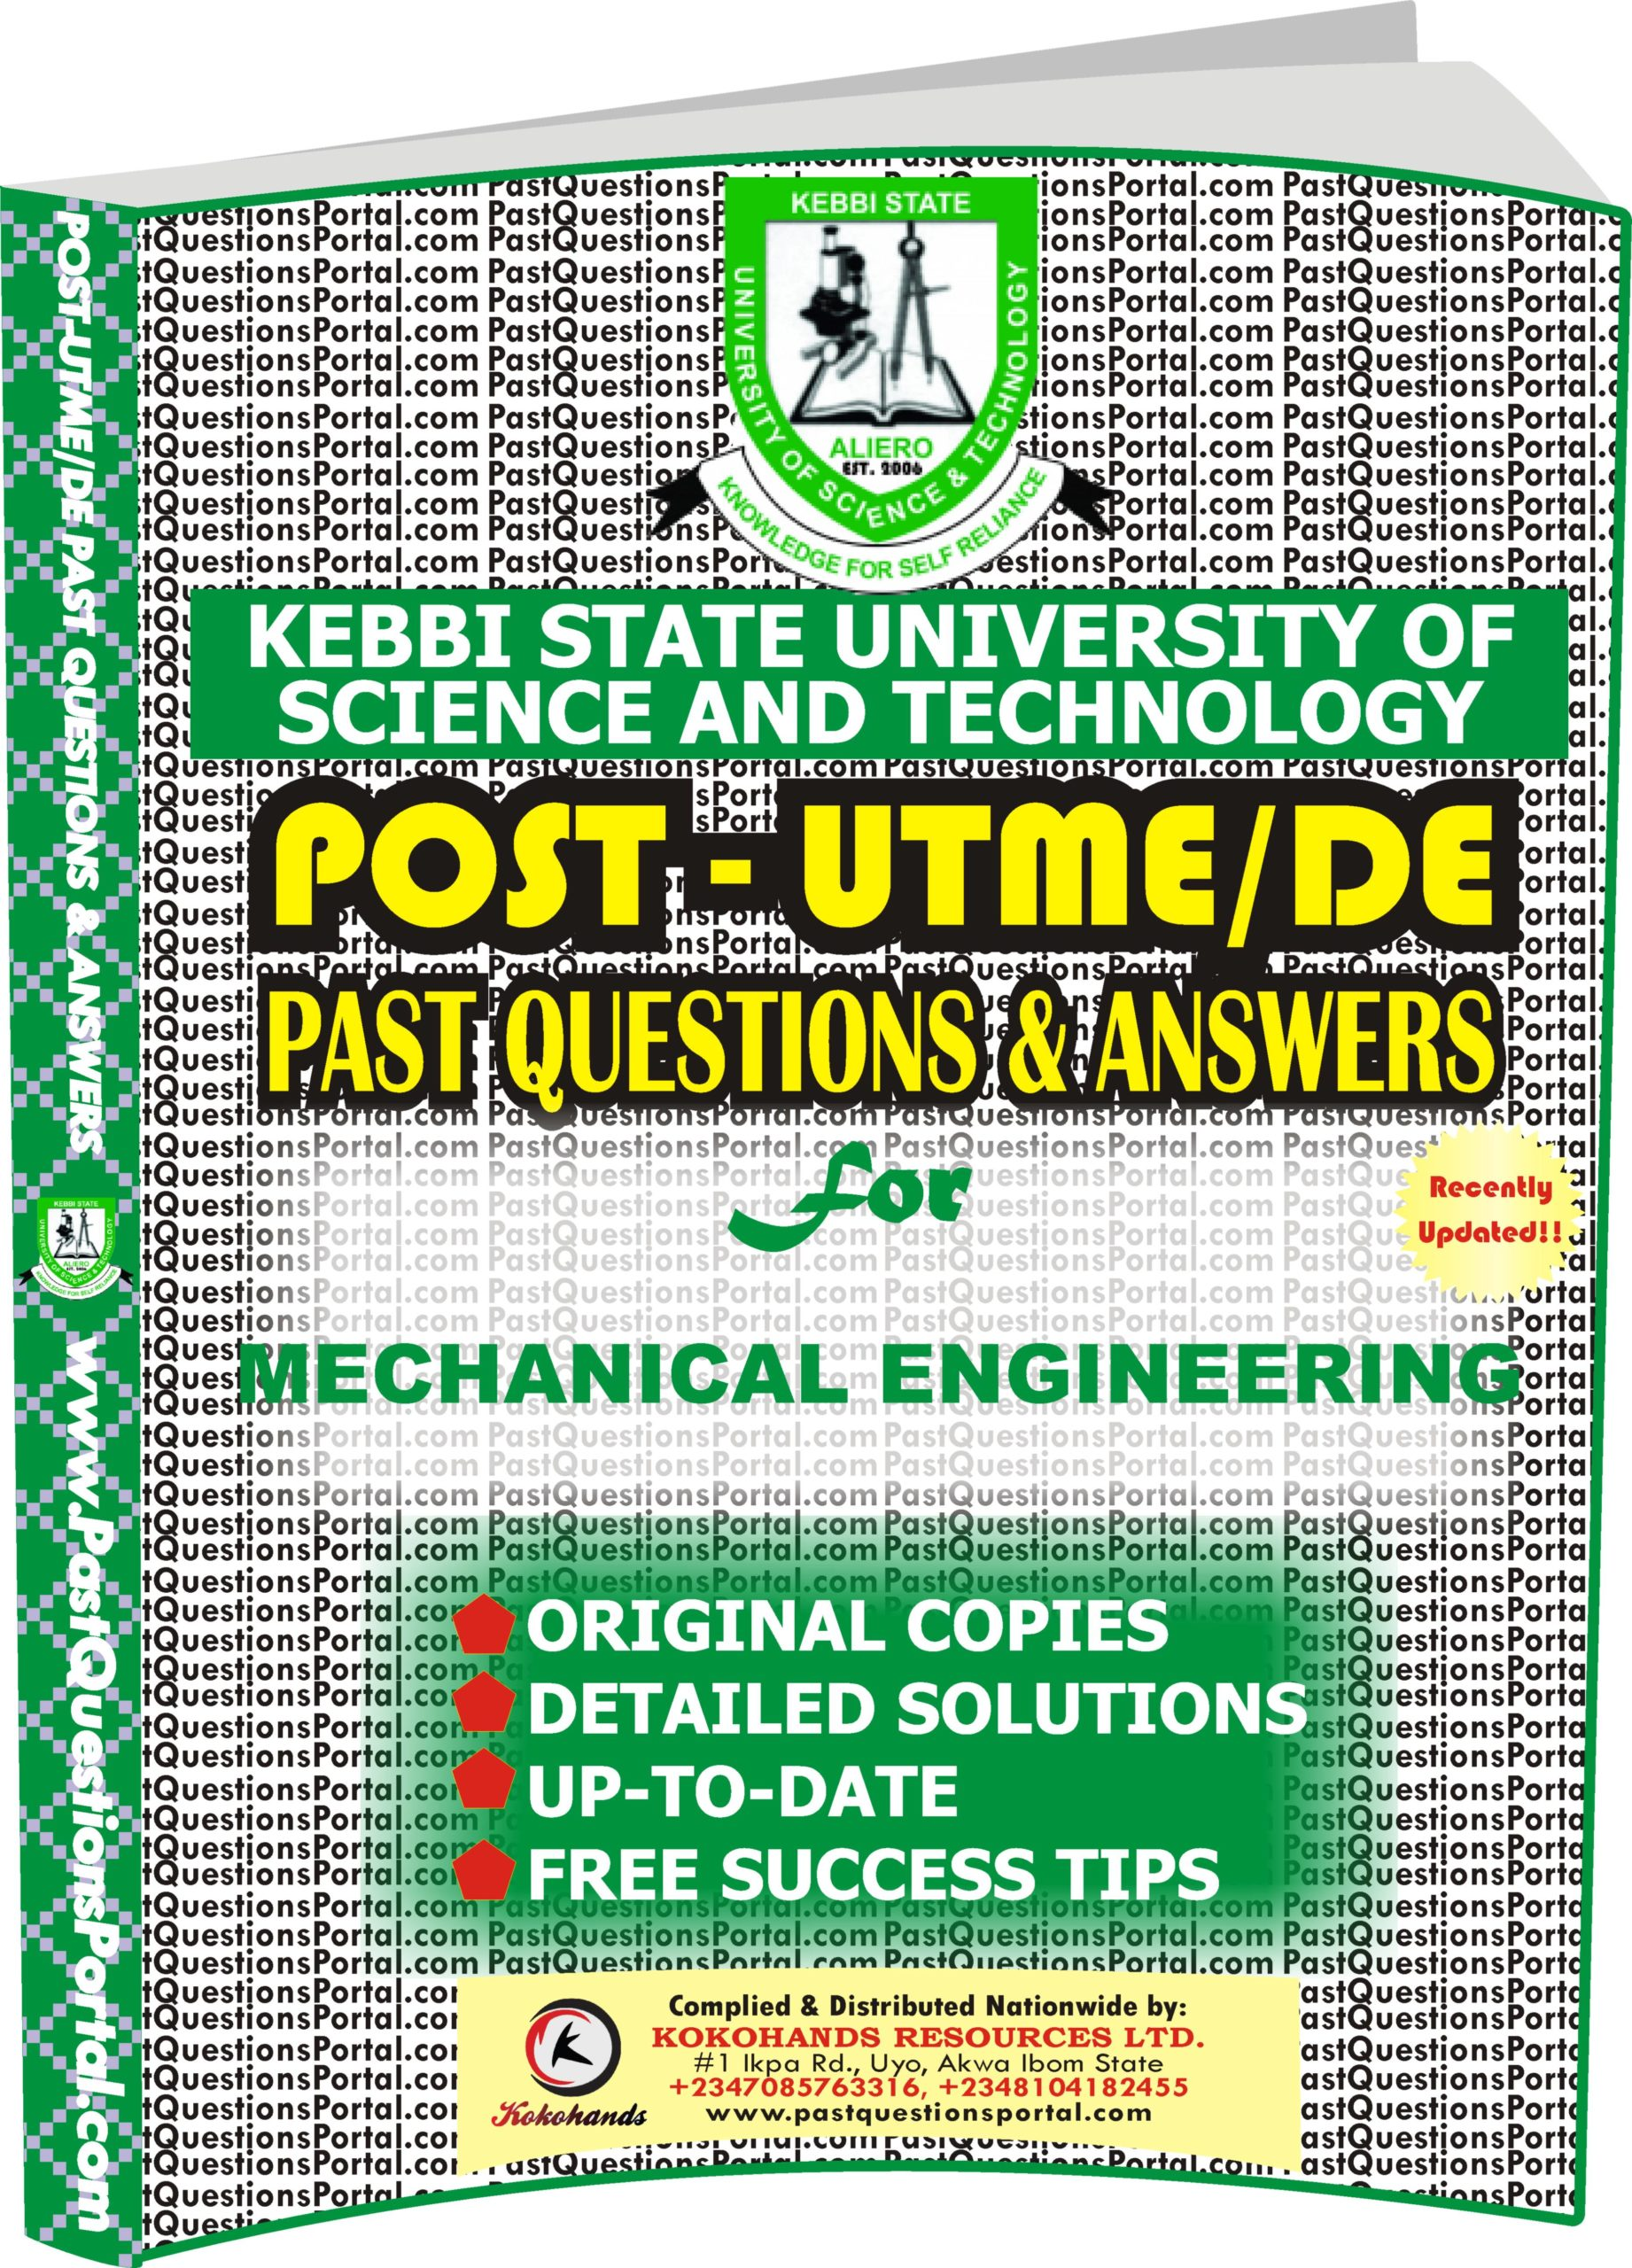 KSUSTA Post UTME Past Questions for MECHANICAL ENGINEERING